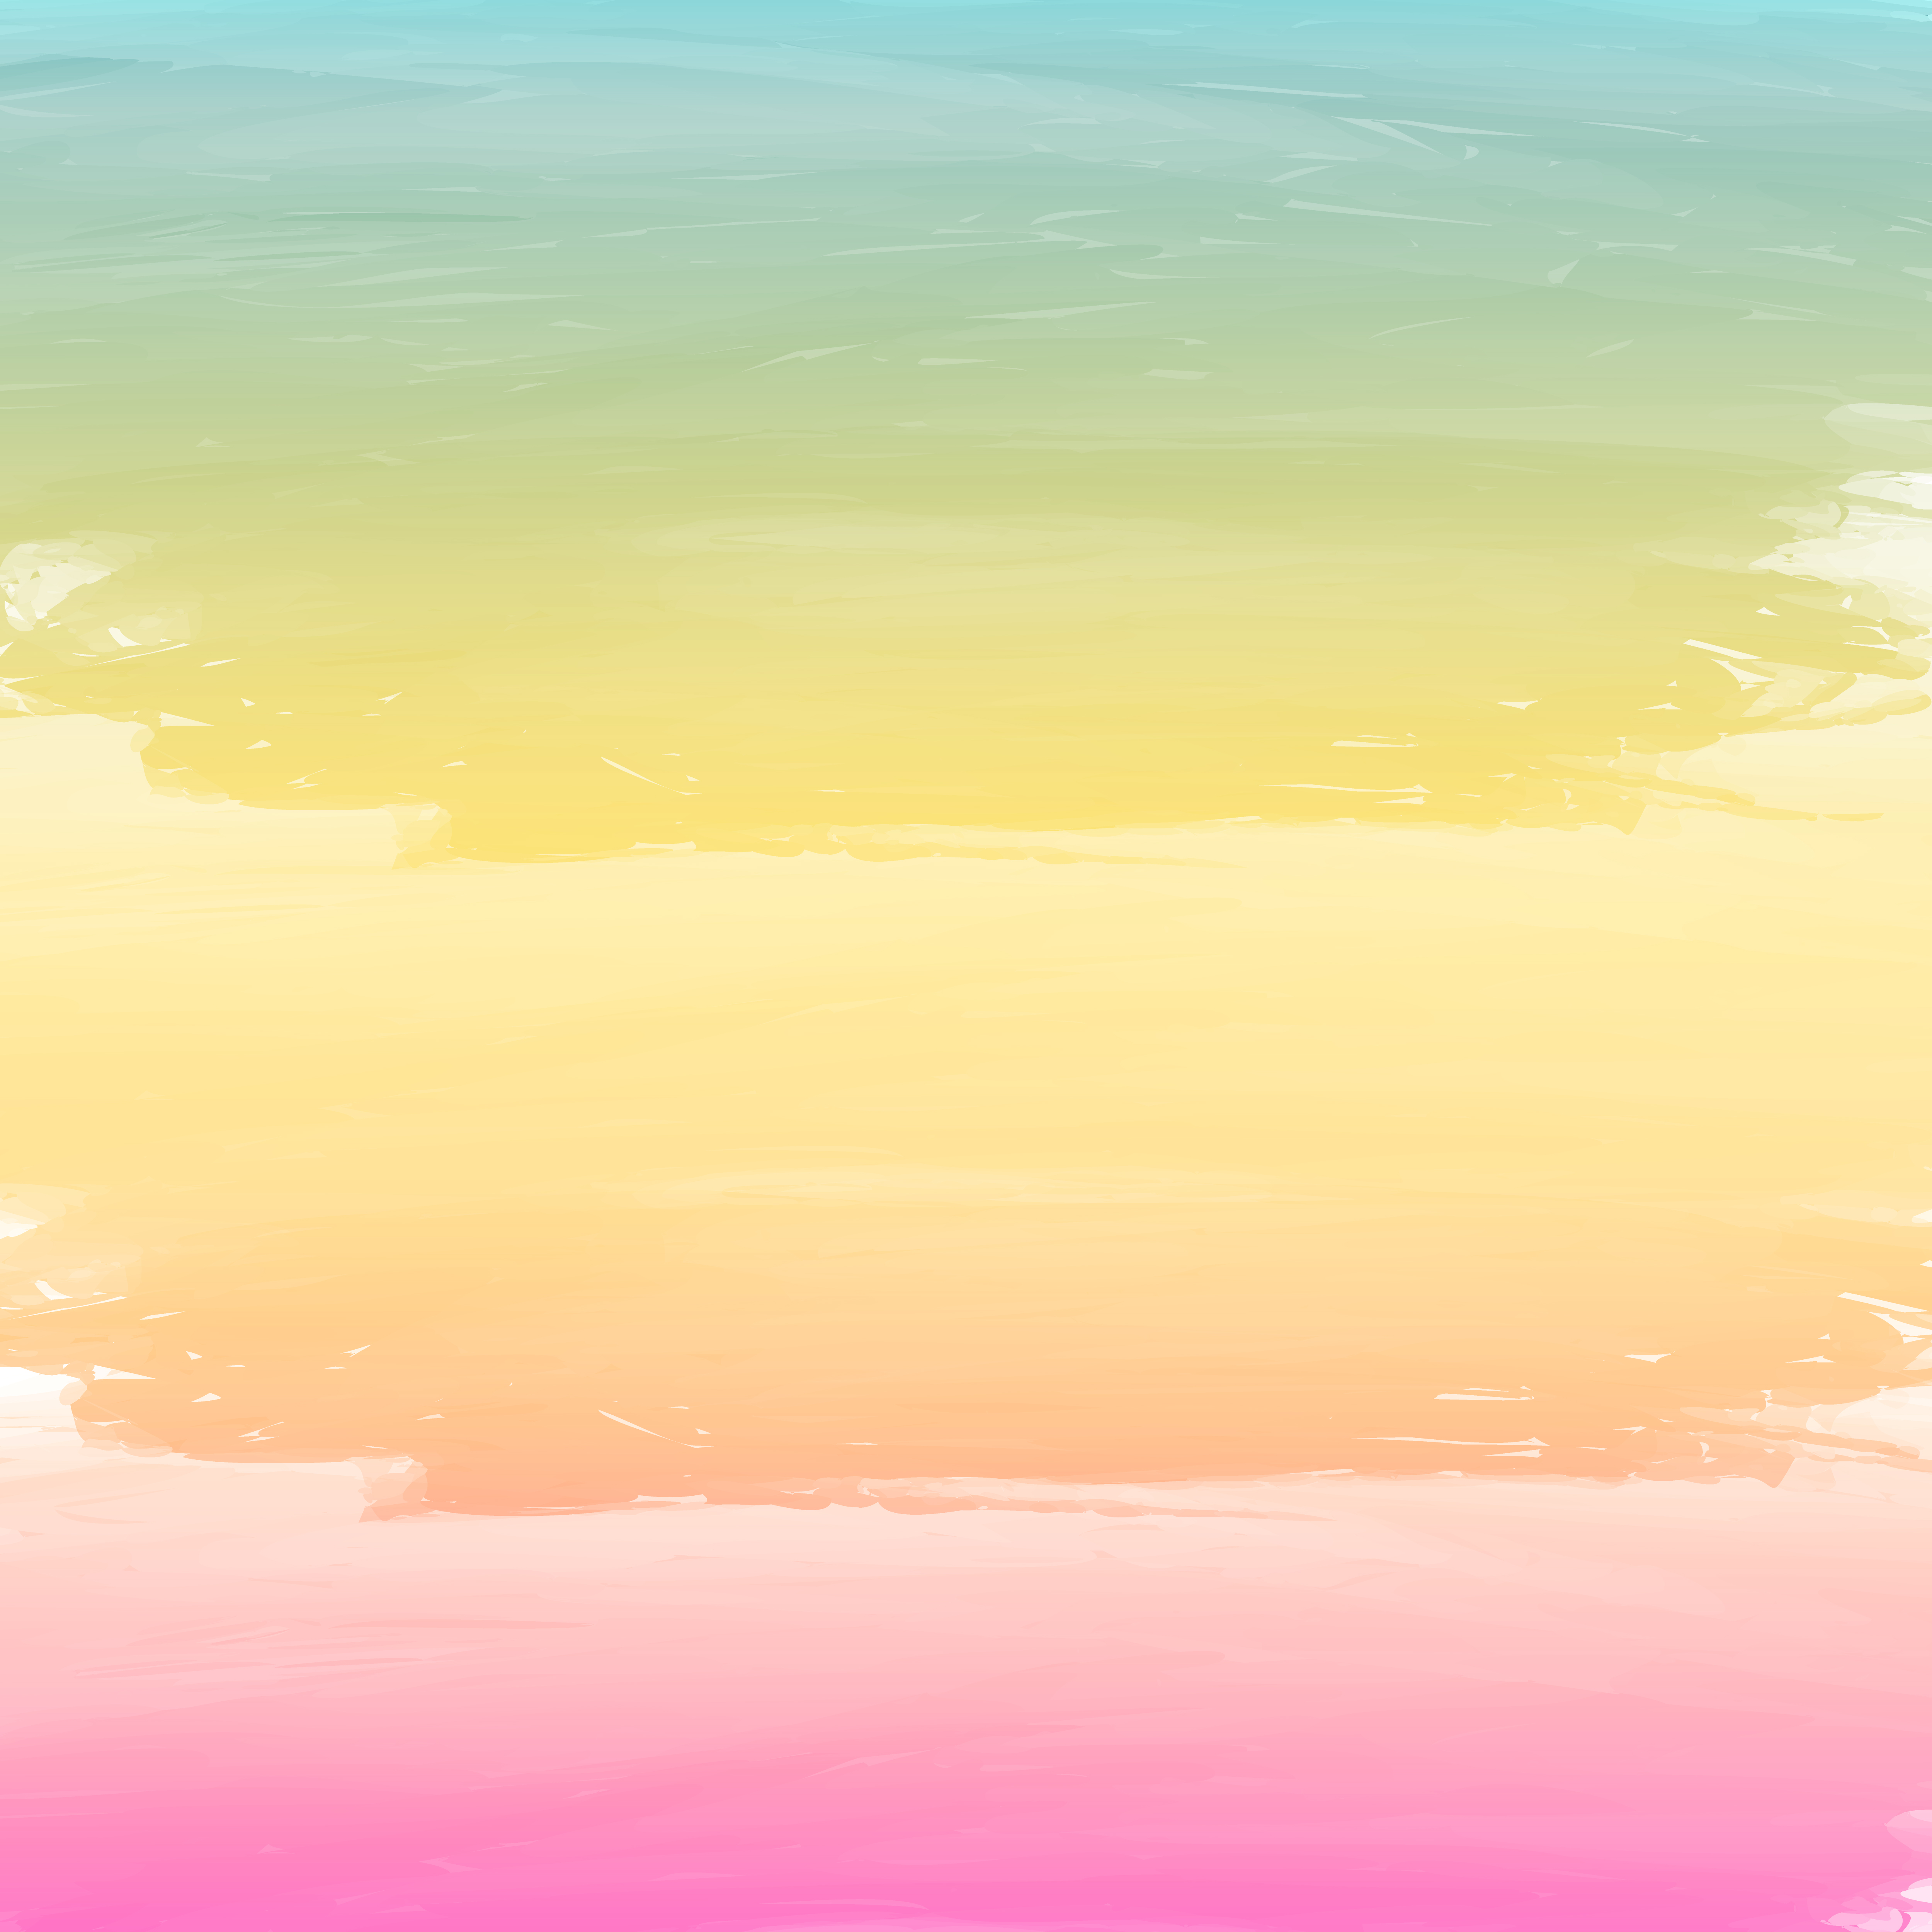 Watercolor Background With Pastel Color Download Free Vectors Clipart Graphics Vector Art